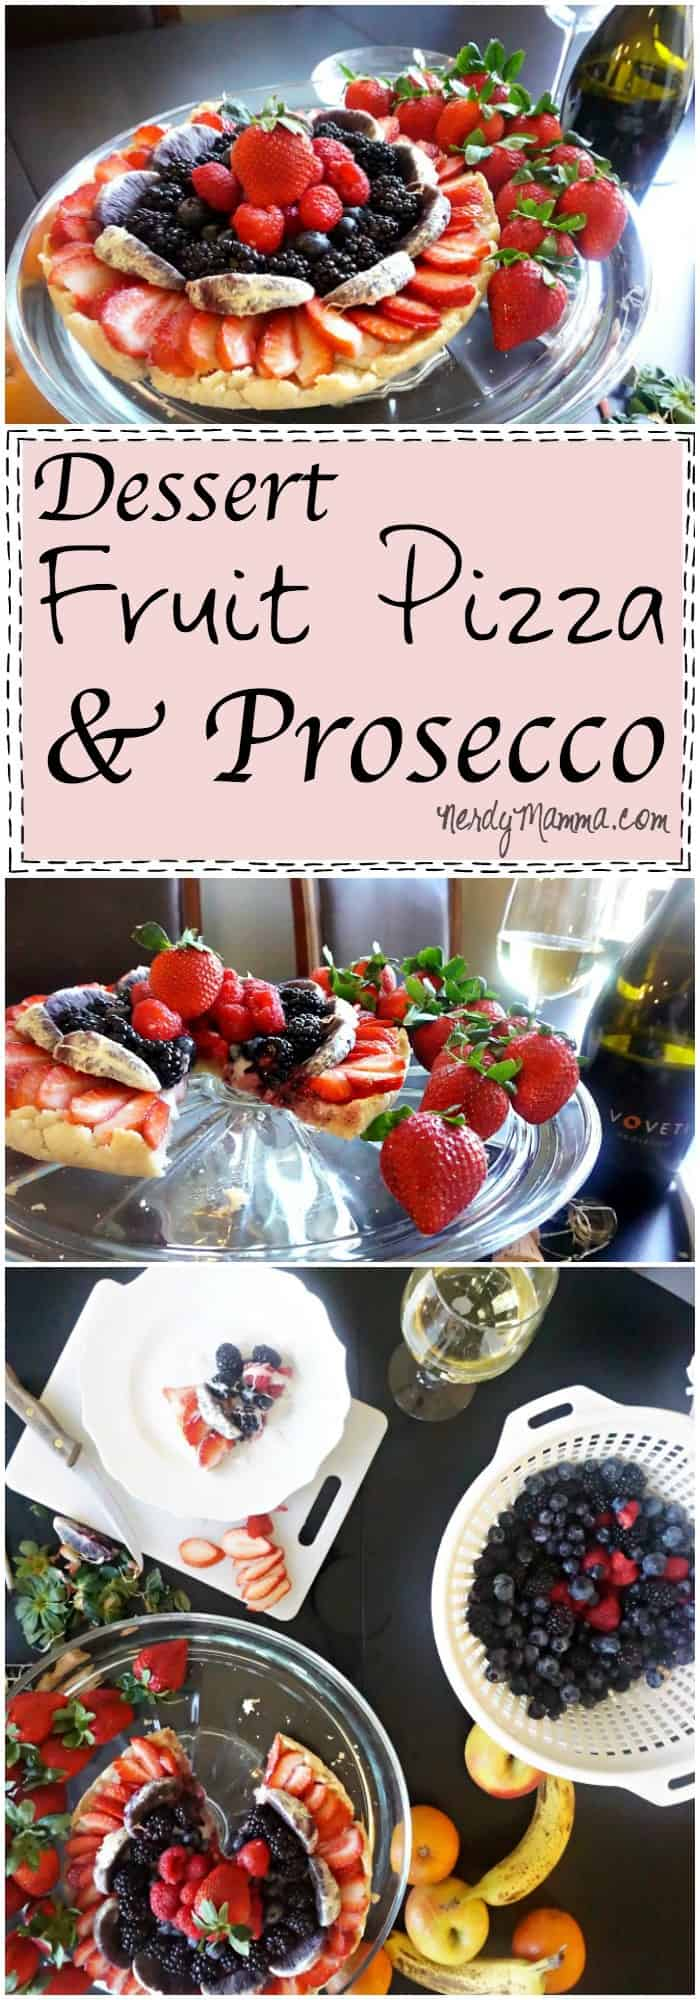 I love this pairing of fruit pizza and prosecco. Such a wonderful after-dinner treat.